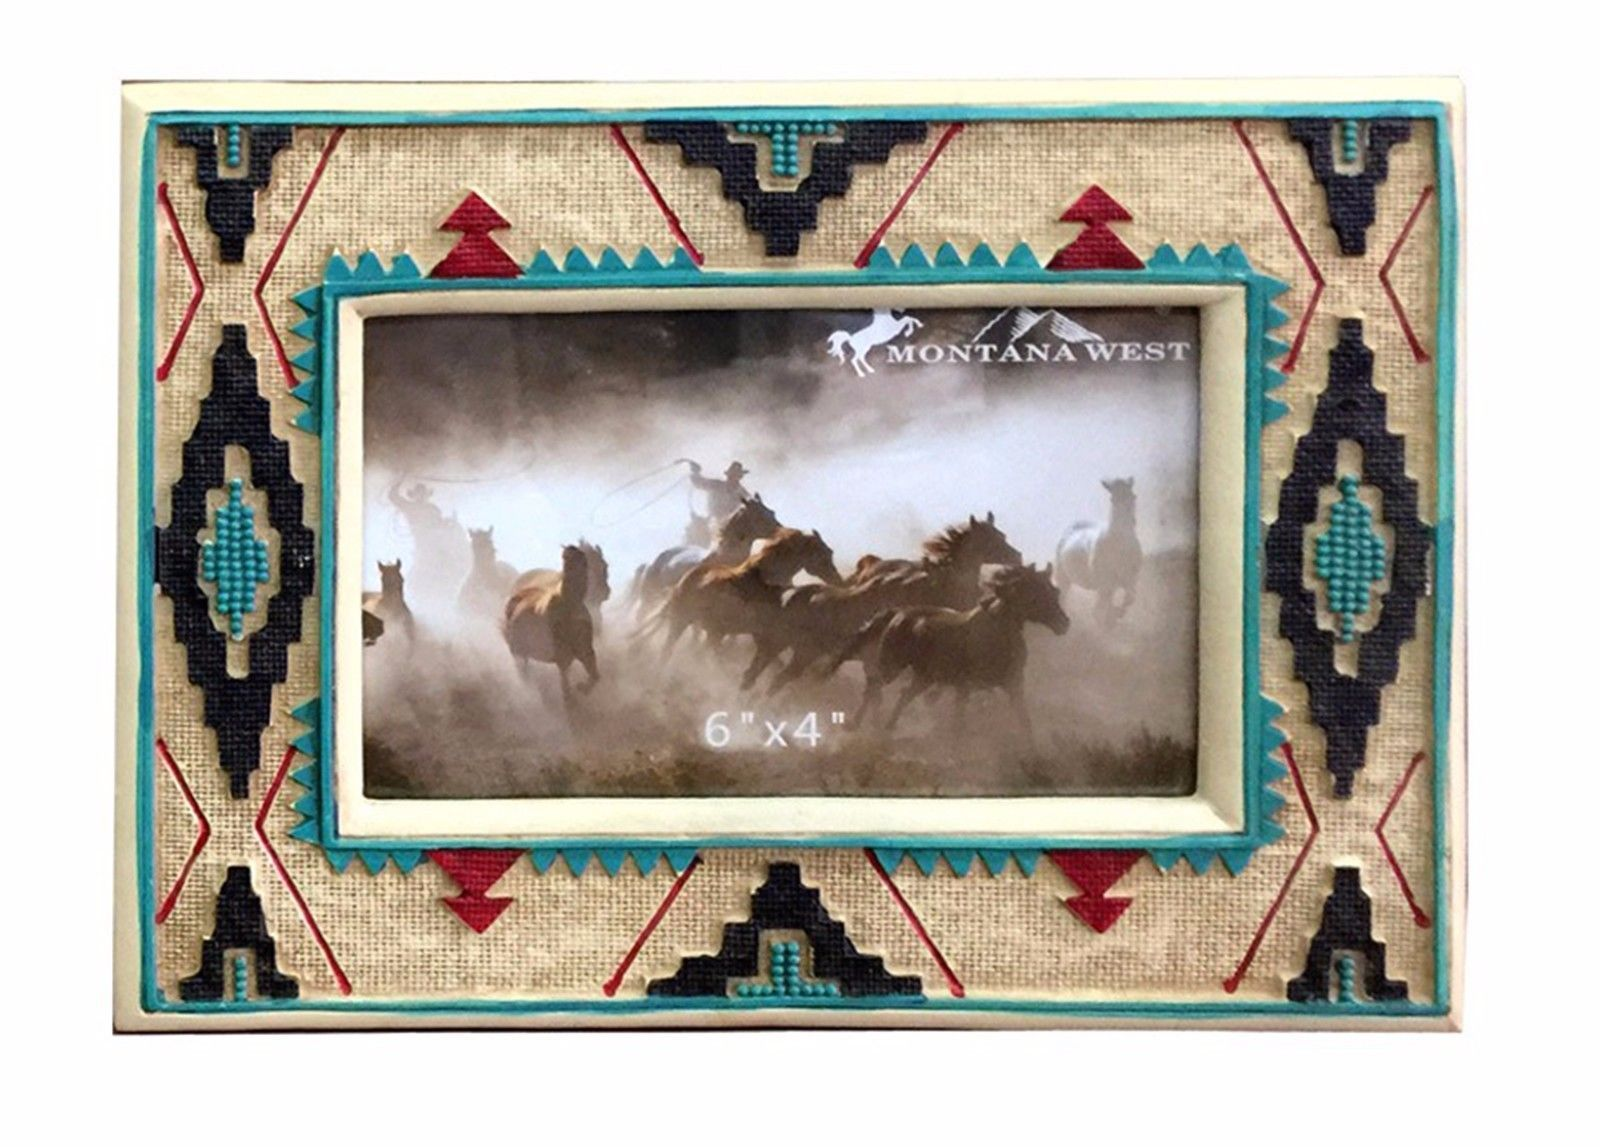 Western Style Decorative Picture Frame Home Decor Montana West White Aztec